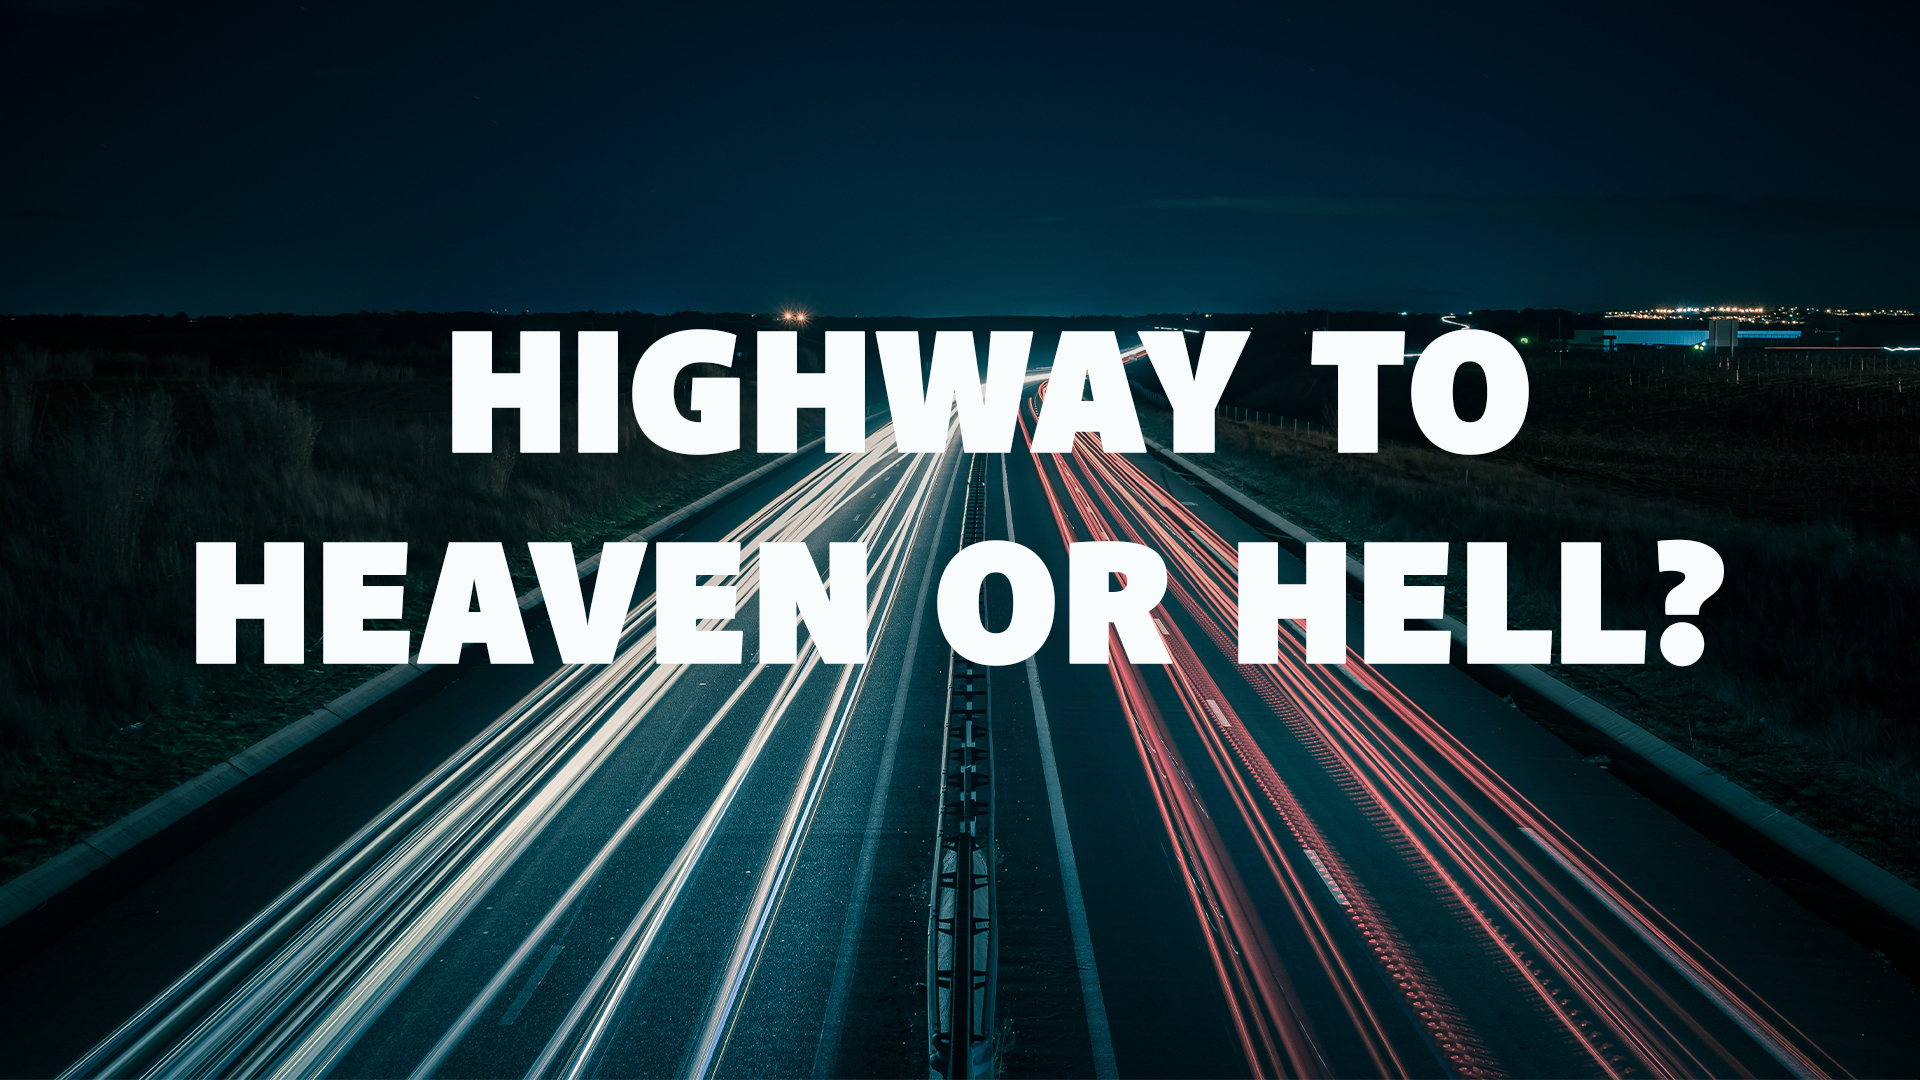 Highway to Heaven or Hell?